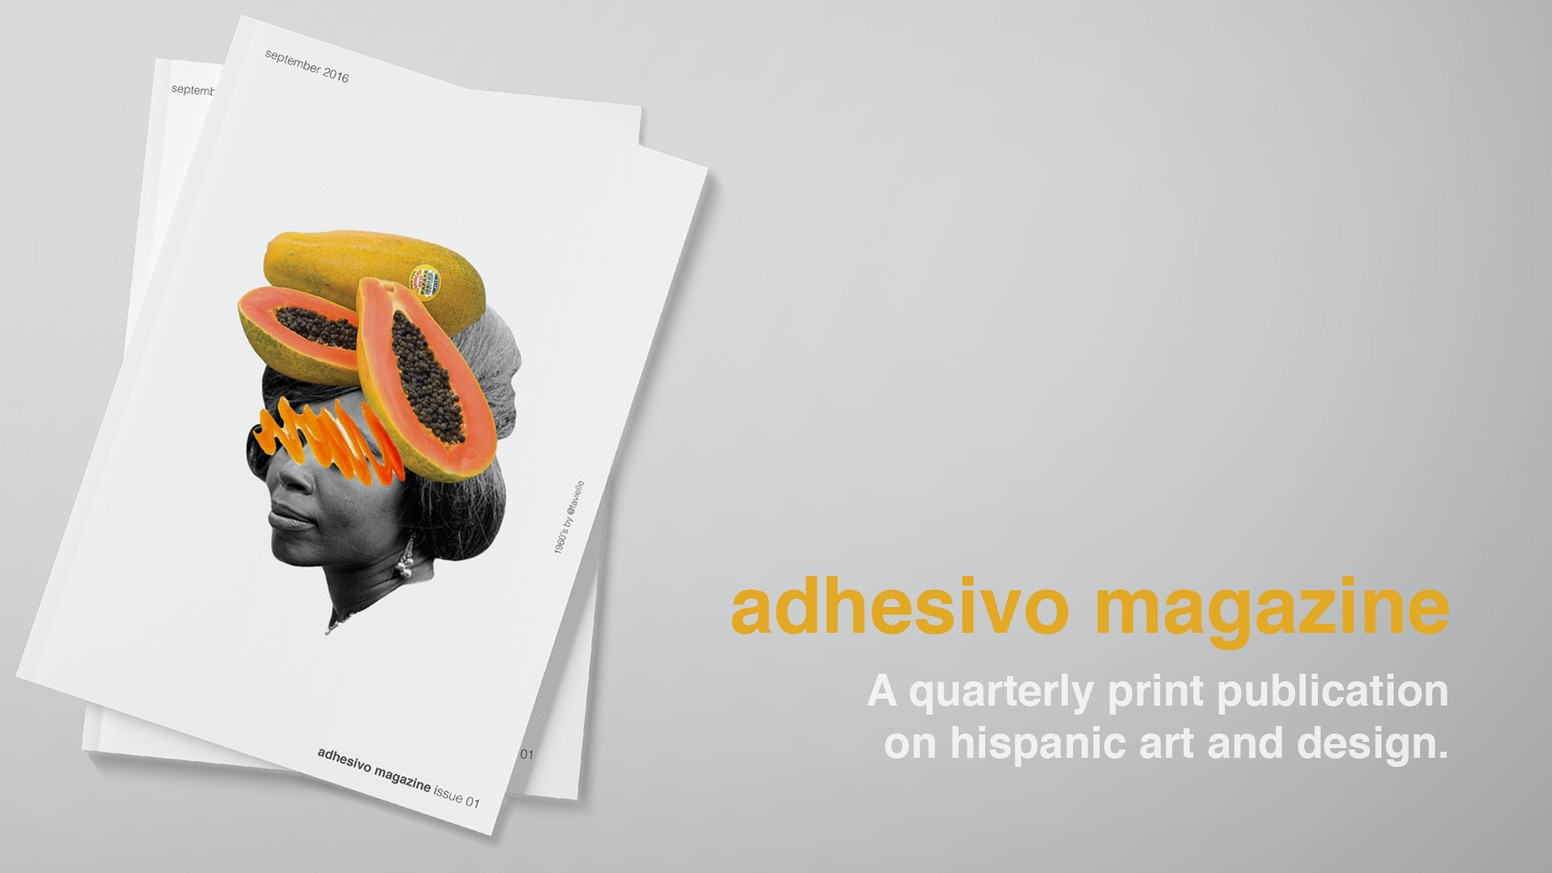 The First Print Publication to discuss the present through the work of Young Emerging Hispanic Artists and Designers.